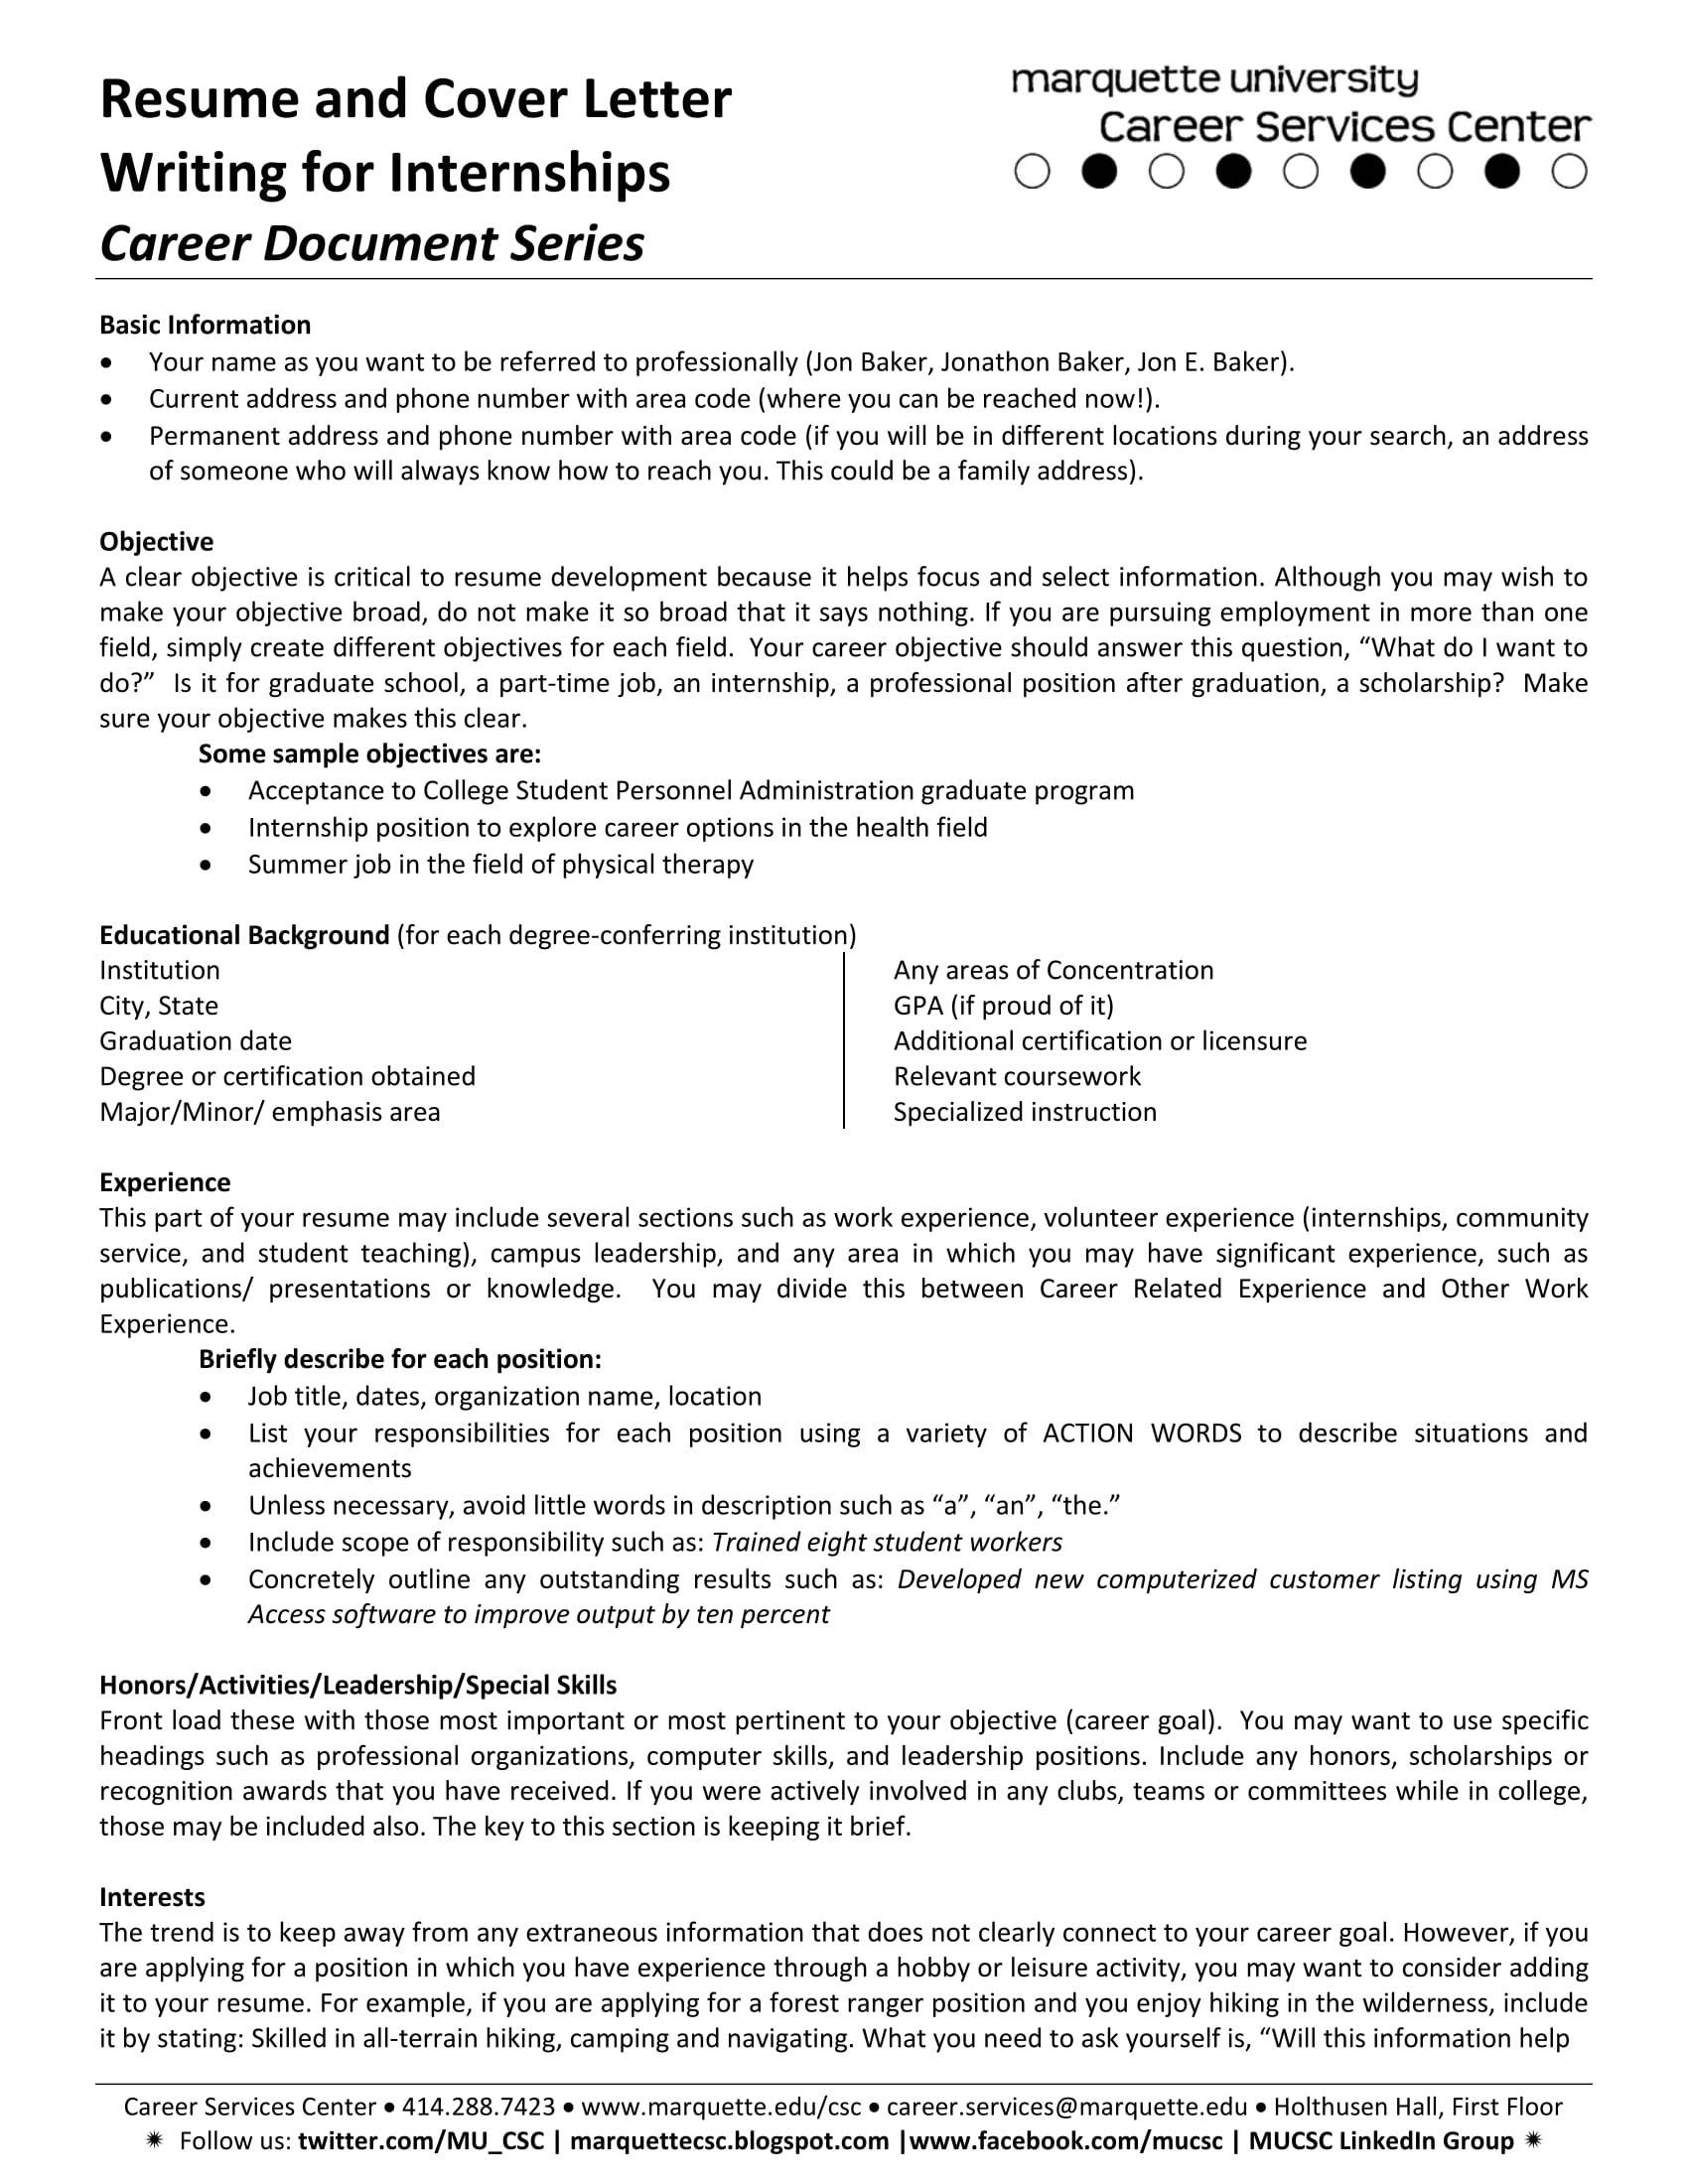 cover letter marketing internship uk cover letter example cover